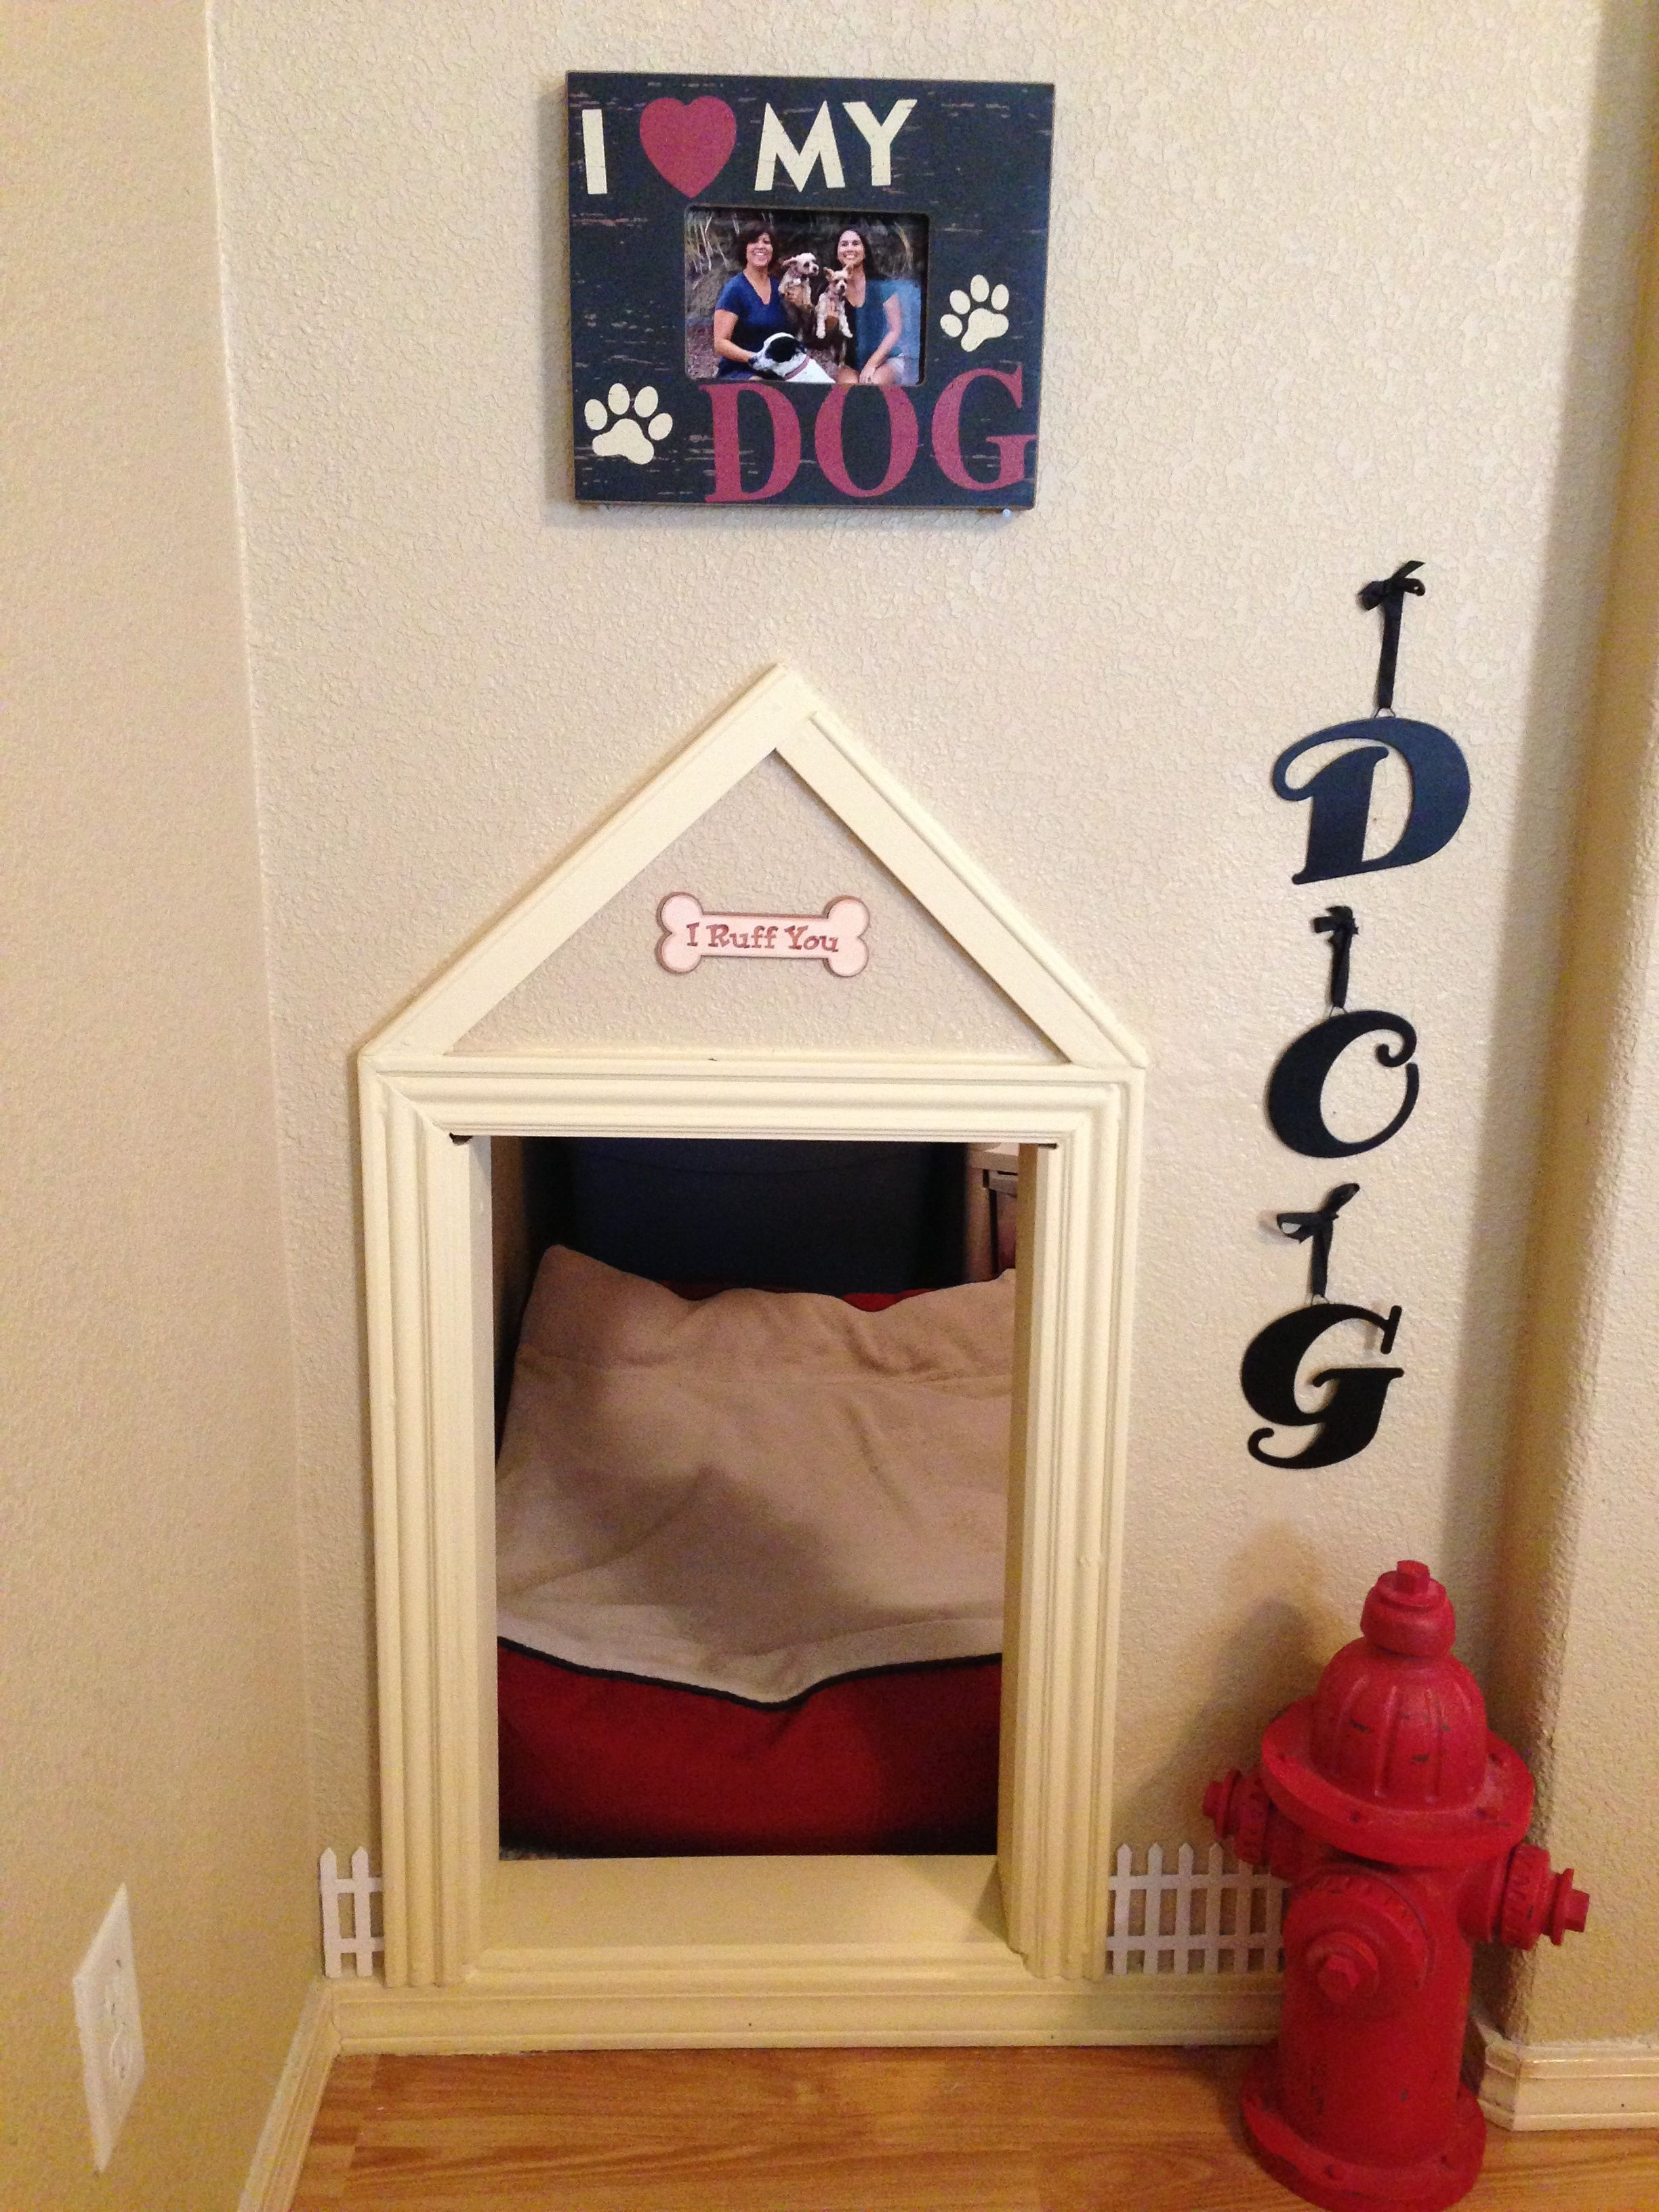 Built In Dog House For My Puppies Kitchen U0026 Bath Depot In Rome, GA  Specializes